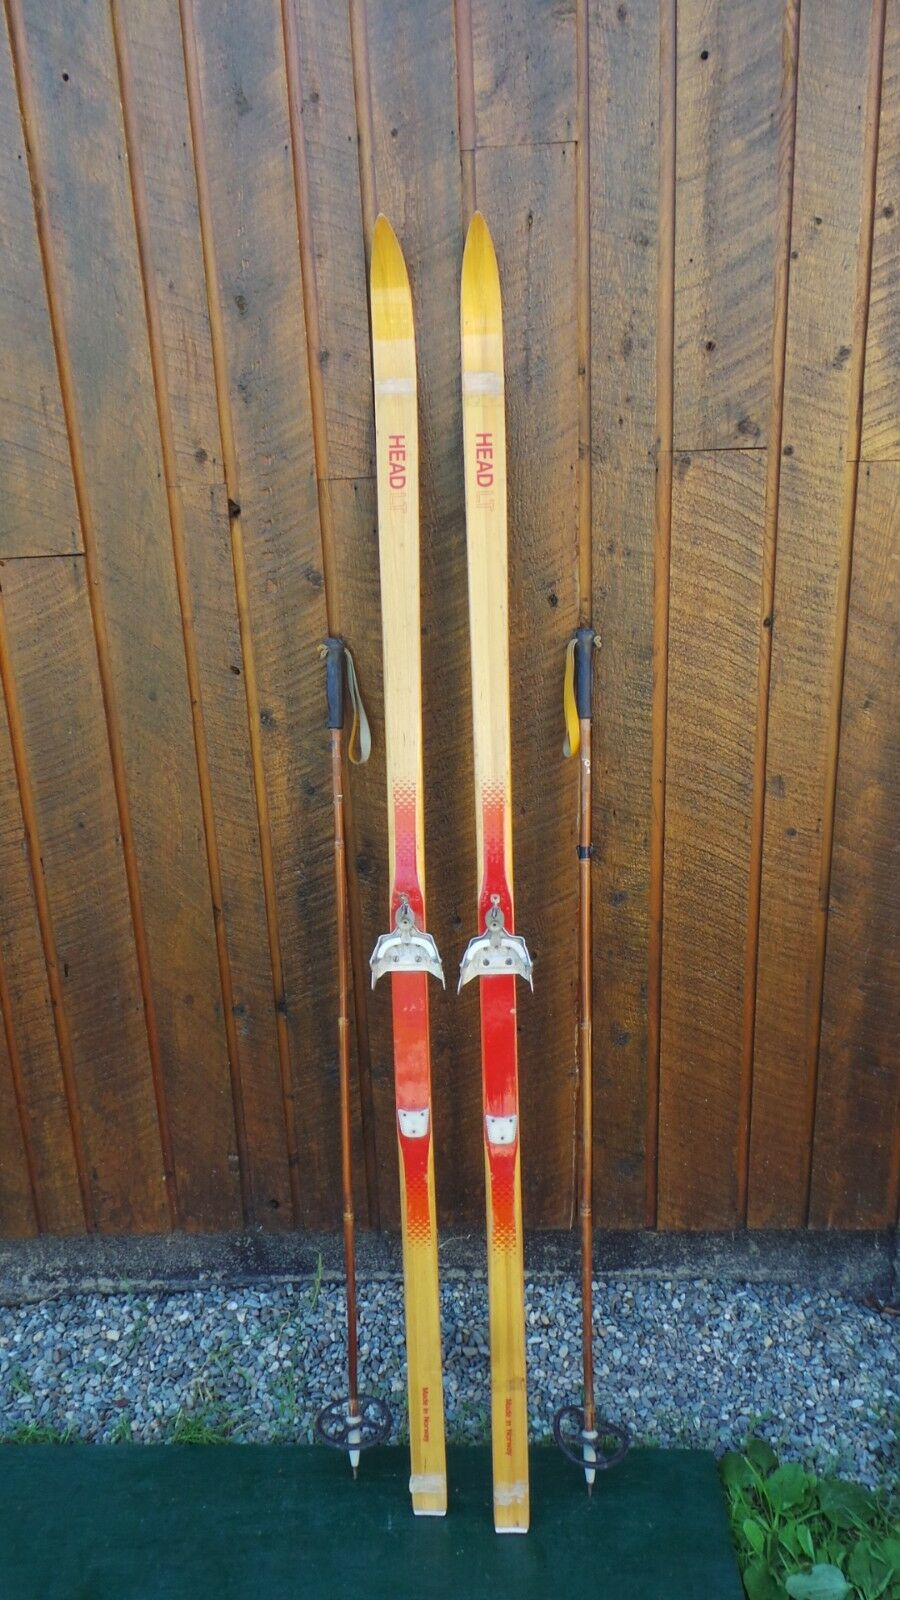 A Very Interesting Vintage  Wooden 74  Long Skis BROWN Finish Signed HEAD  wholesale prices